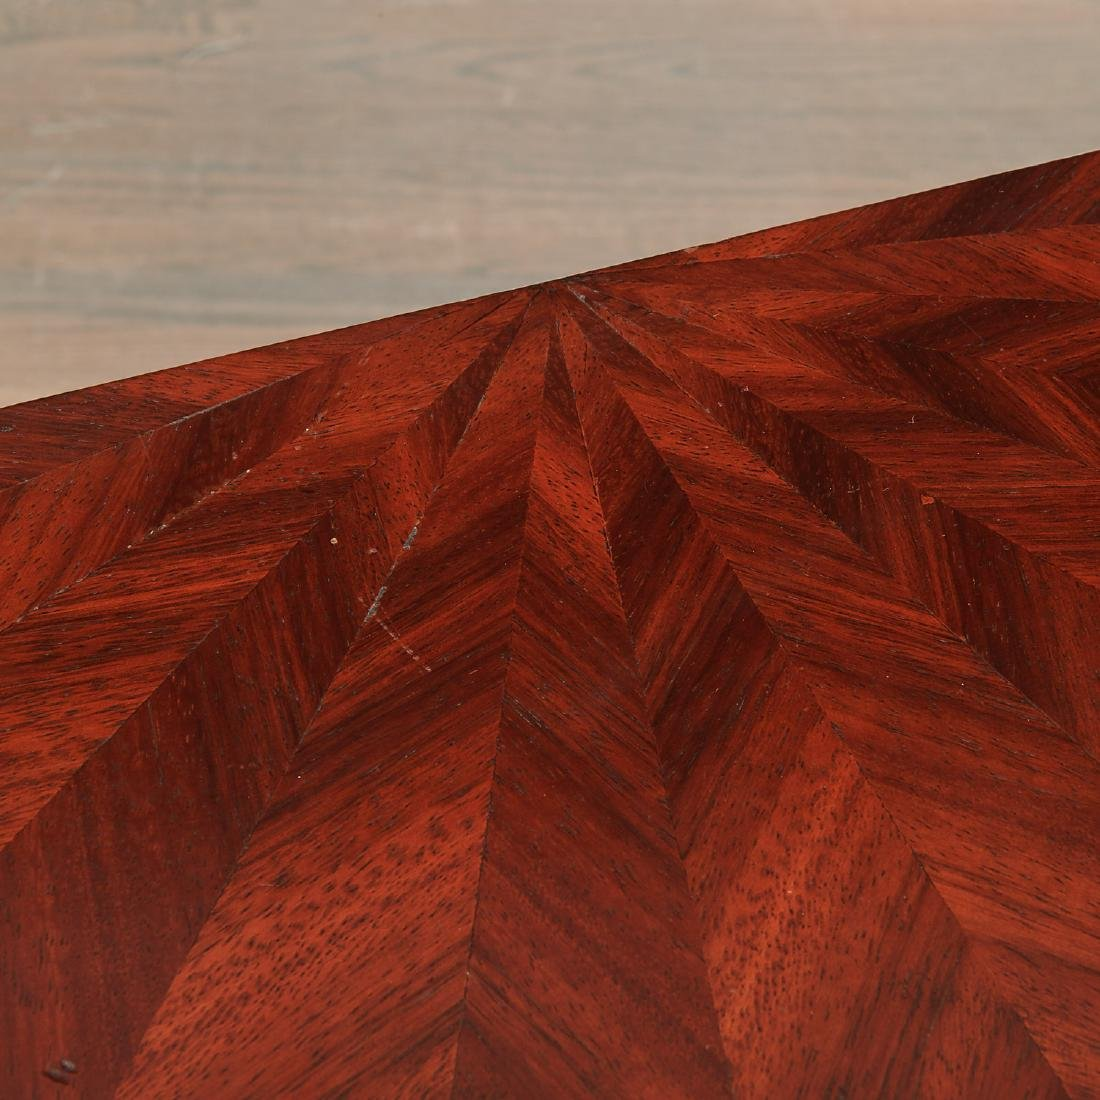 Alfonso Marina parquetry demilune table - 5